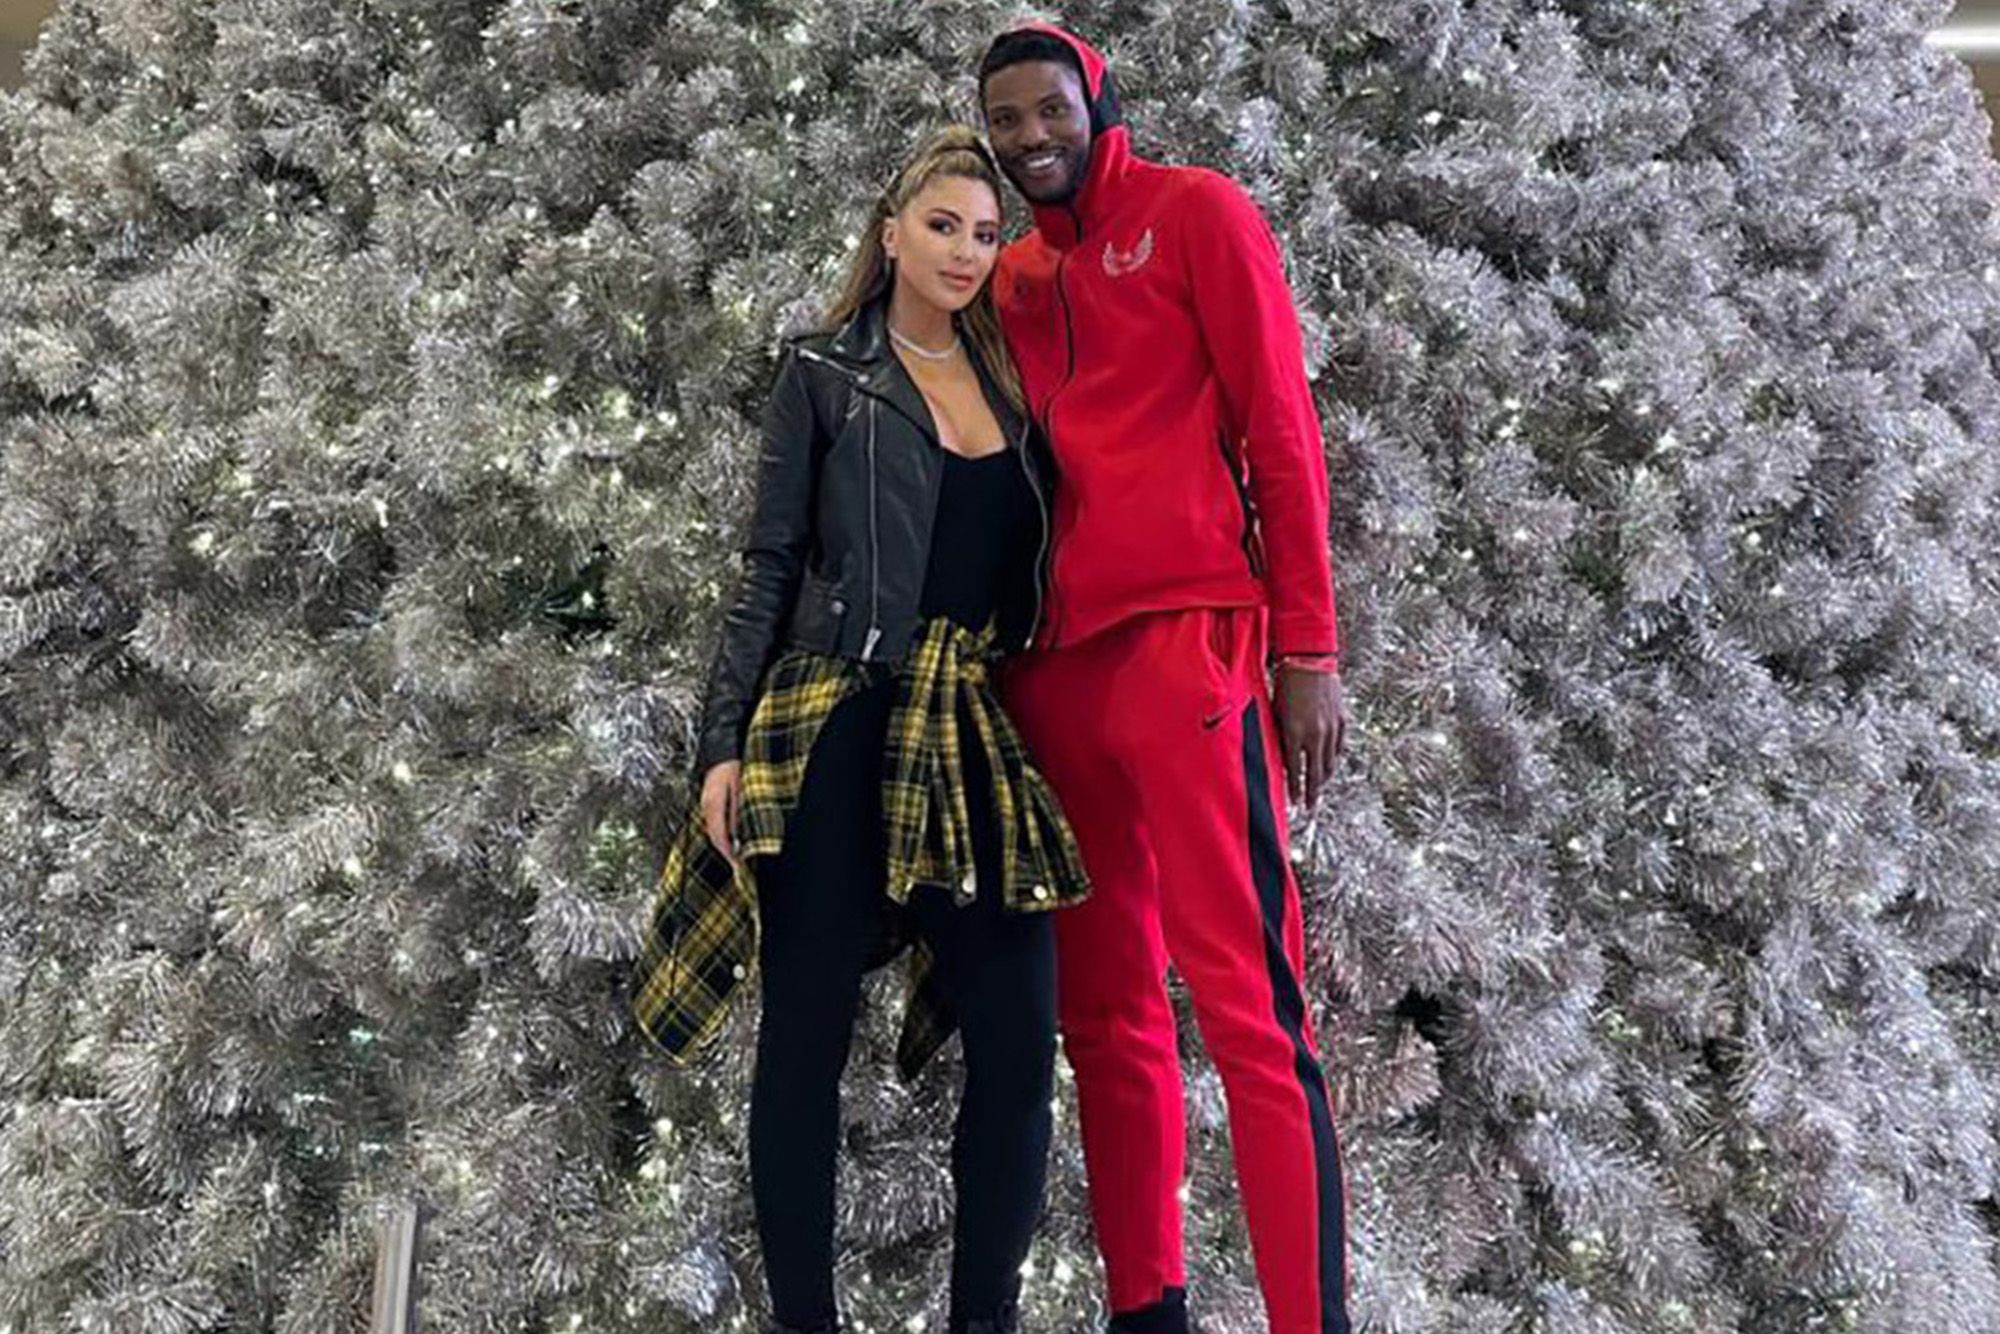 Larsa Pippen Says She And Malik Beasley Were Both Separated When They Began Dating — Malik Beasley's Wife Threatens To Expose Her!